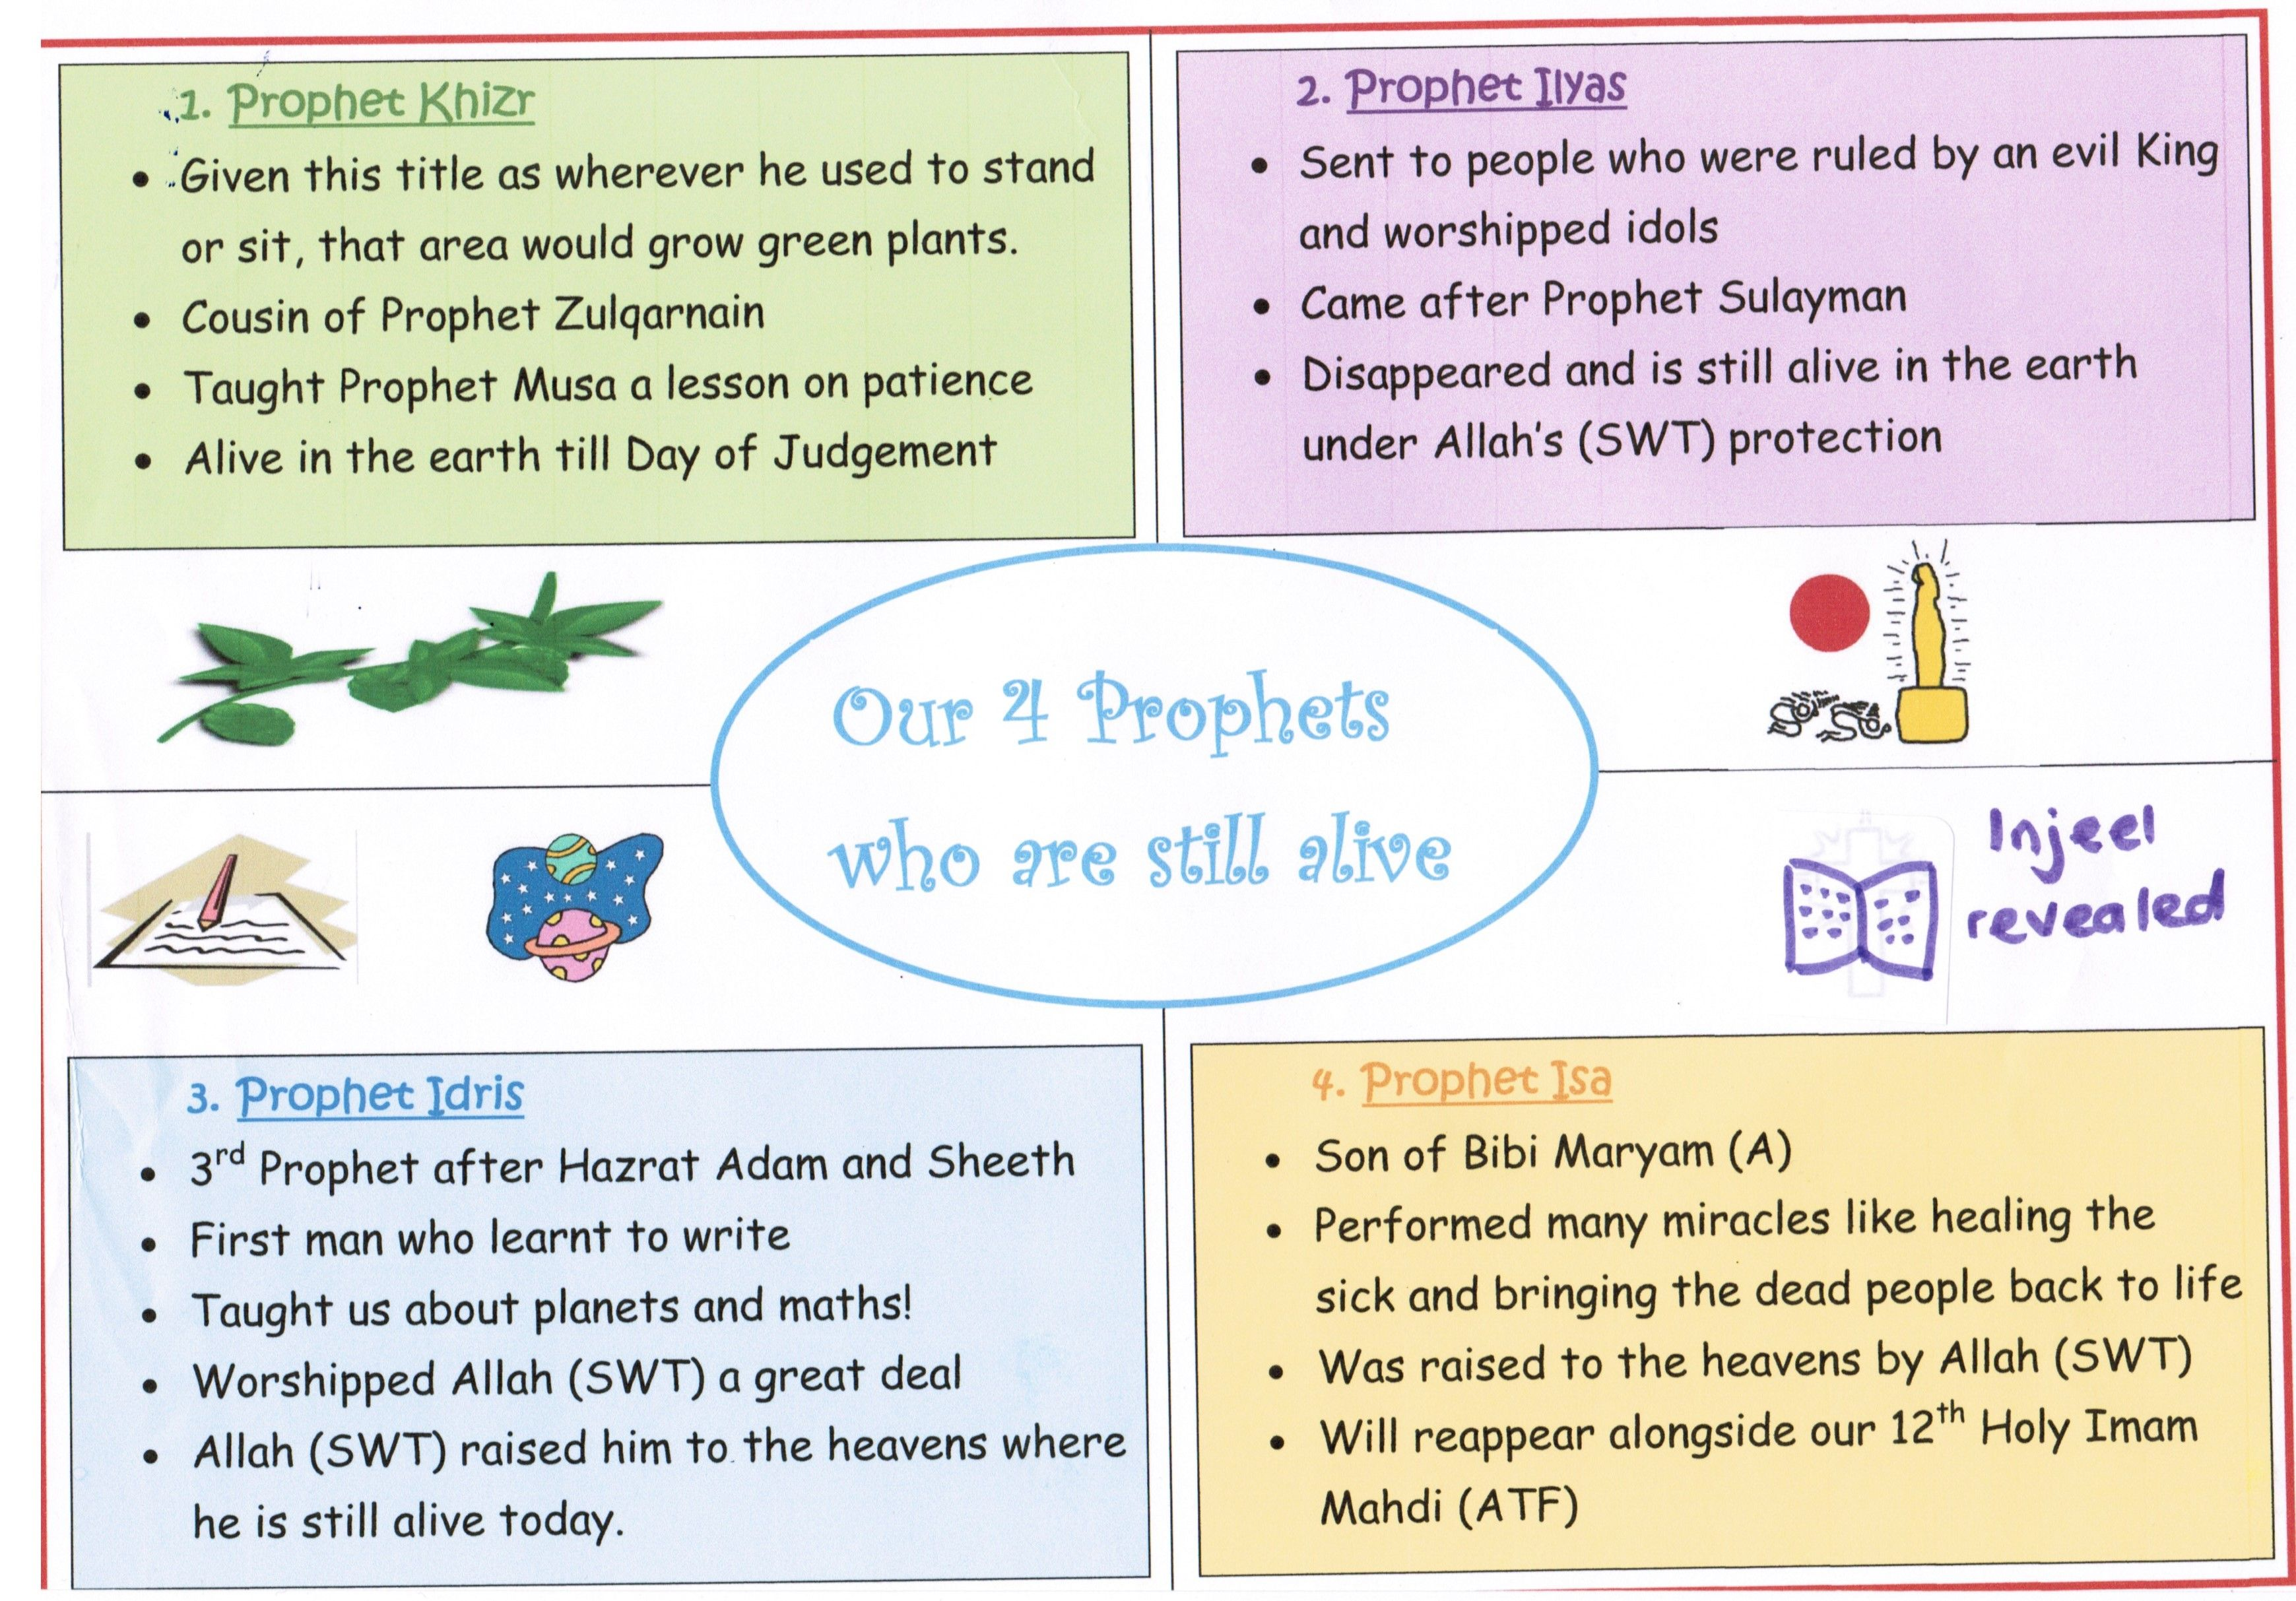 Details of 4 living prophets | Zahid's Islamic Work